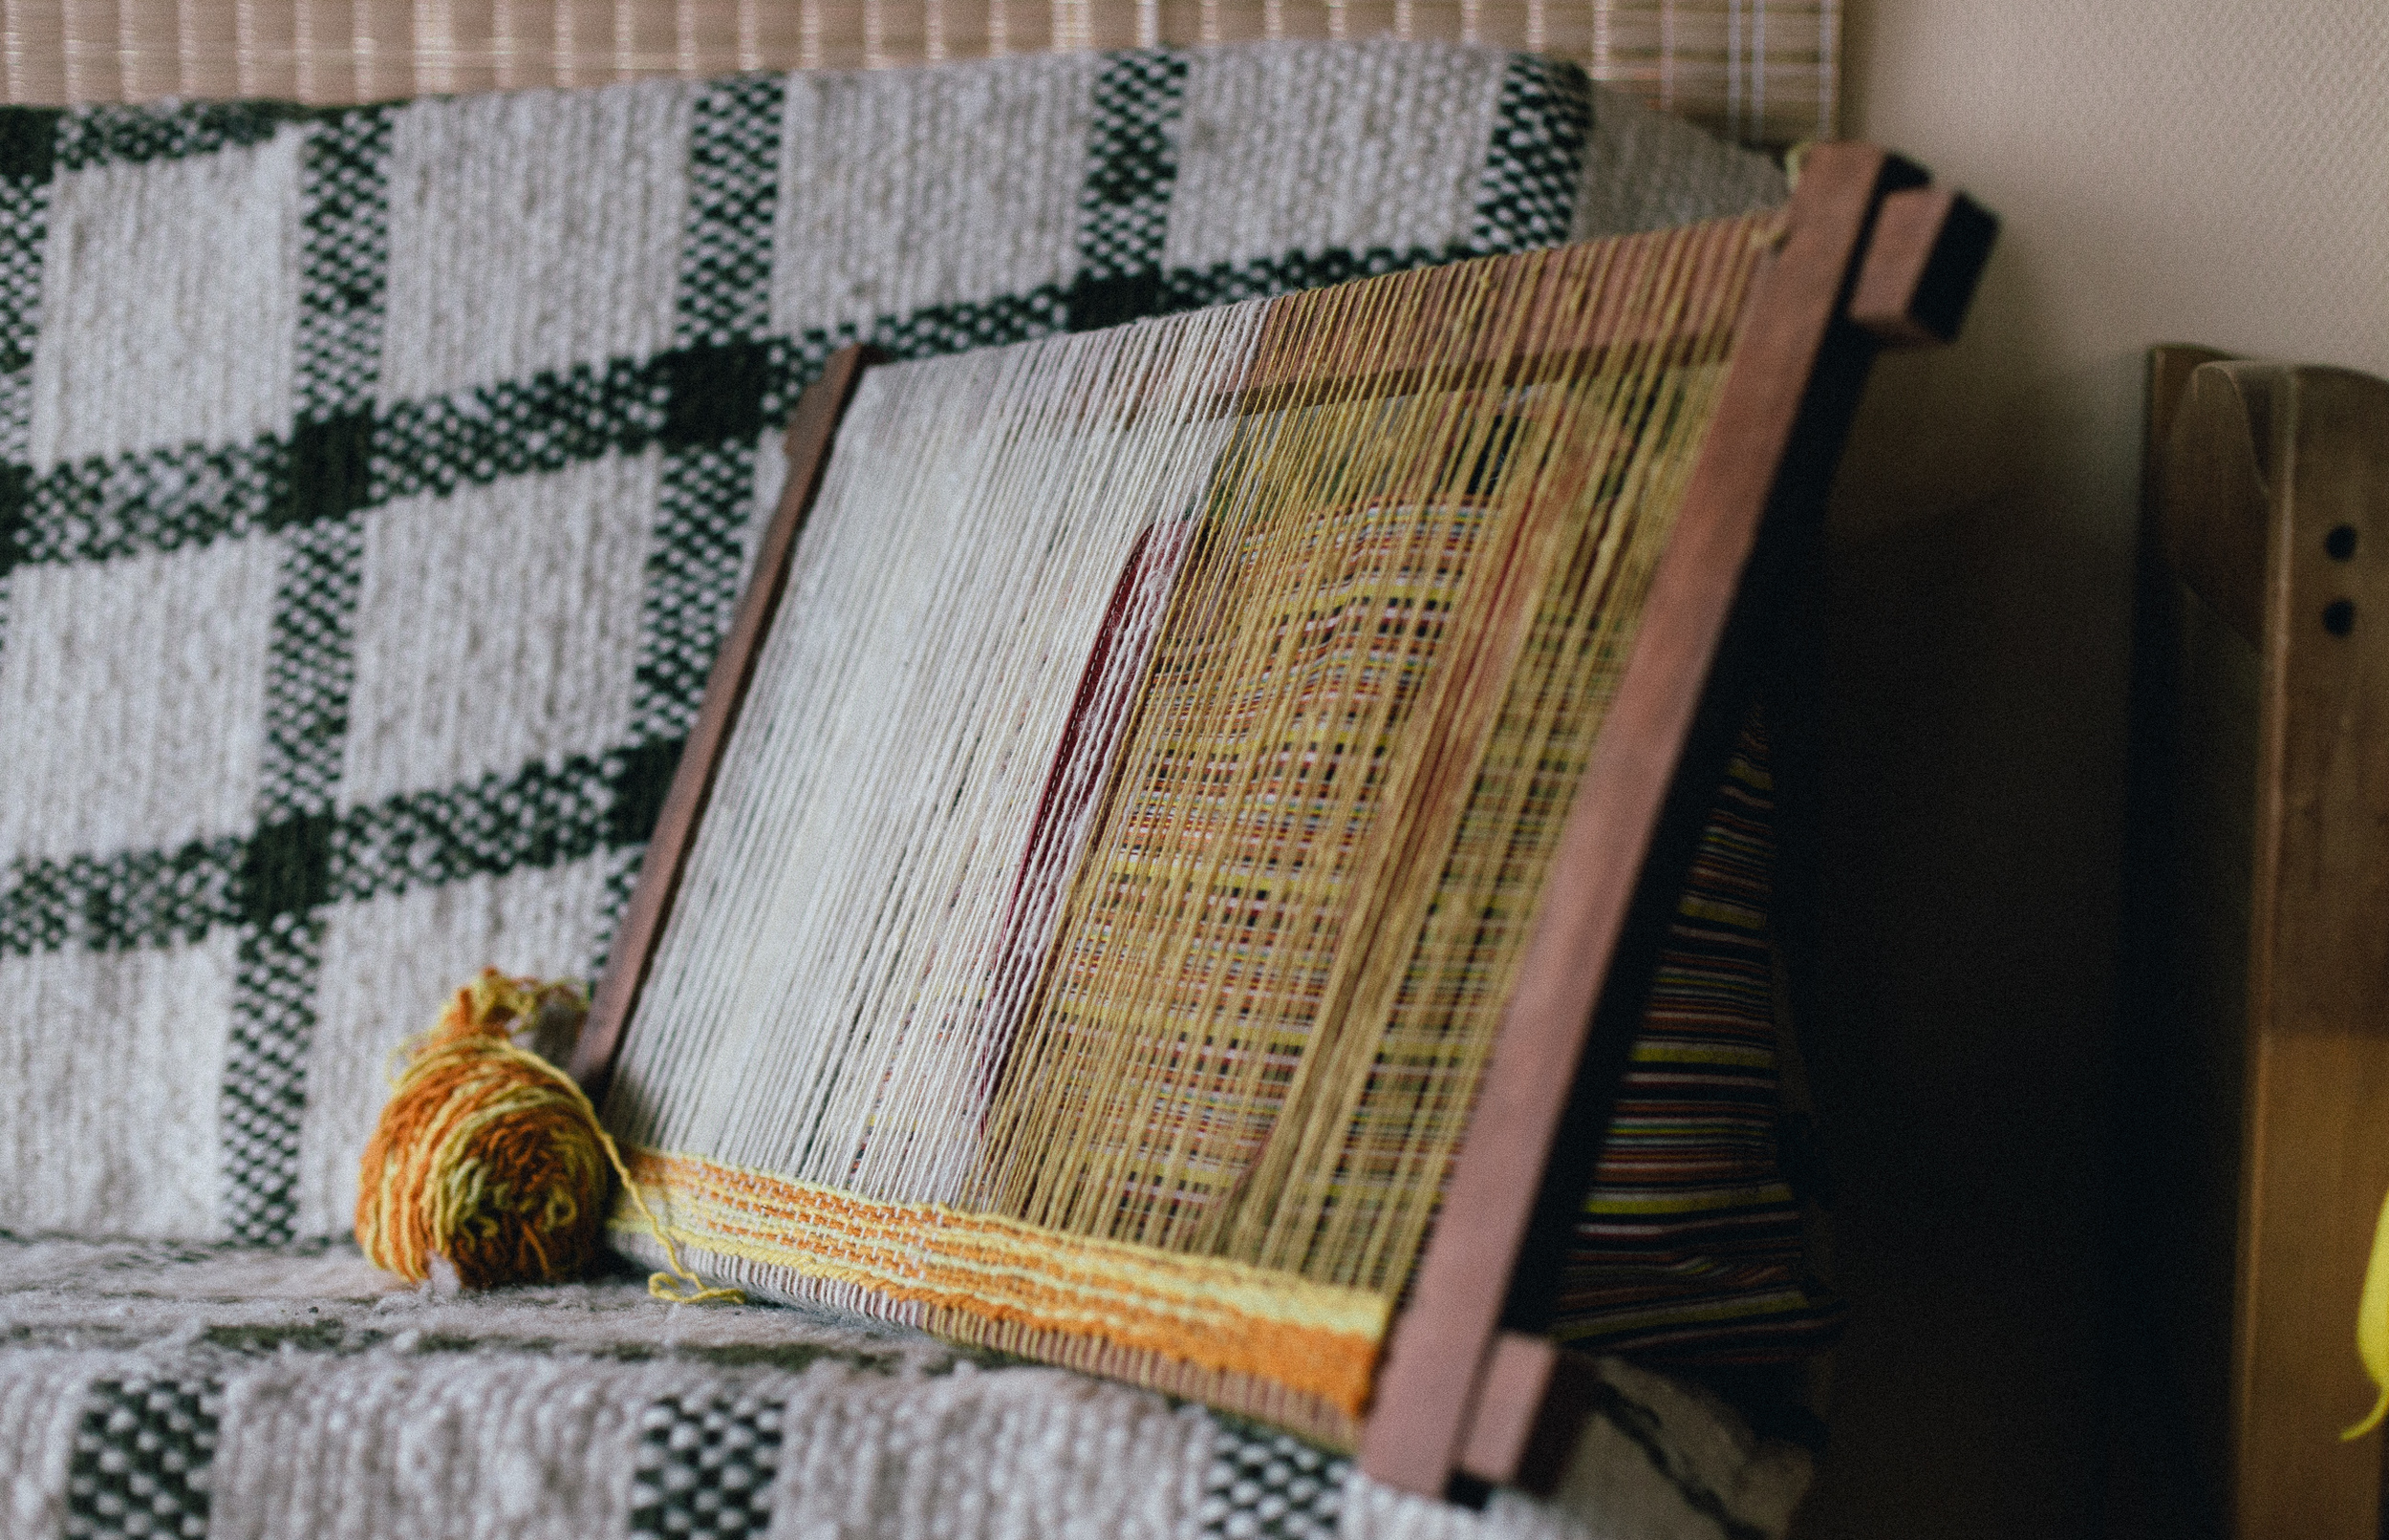 The beginning of one of Grecia's traditional weaving pieces using hand dyed locally produced wool from natural materials, in this case, onion.  Alihuen, Chiloe.